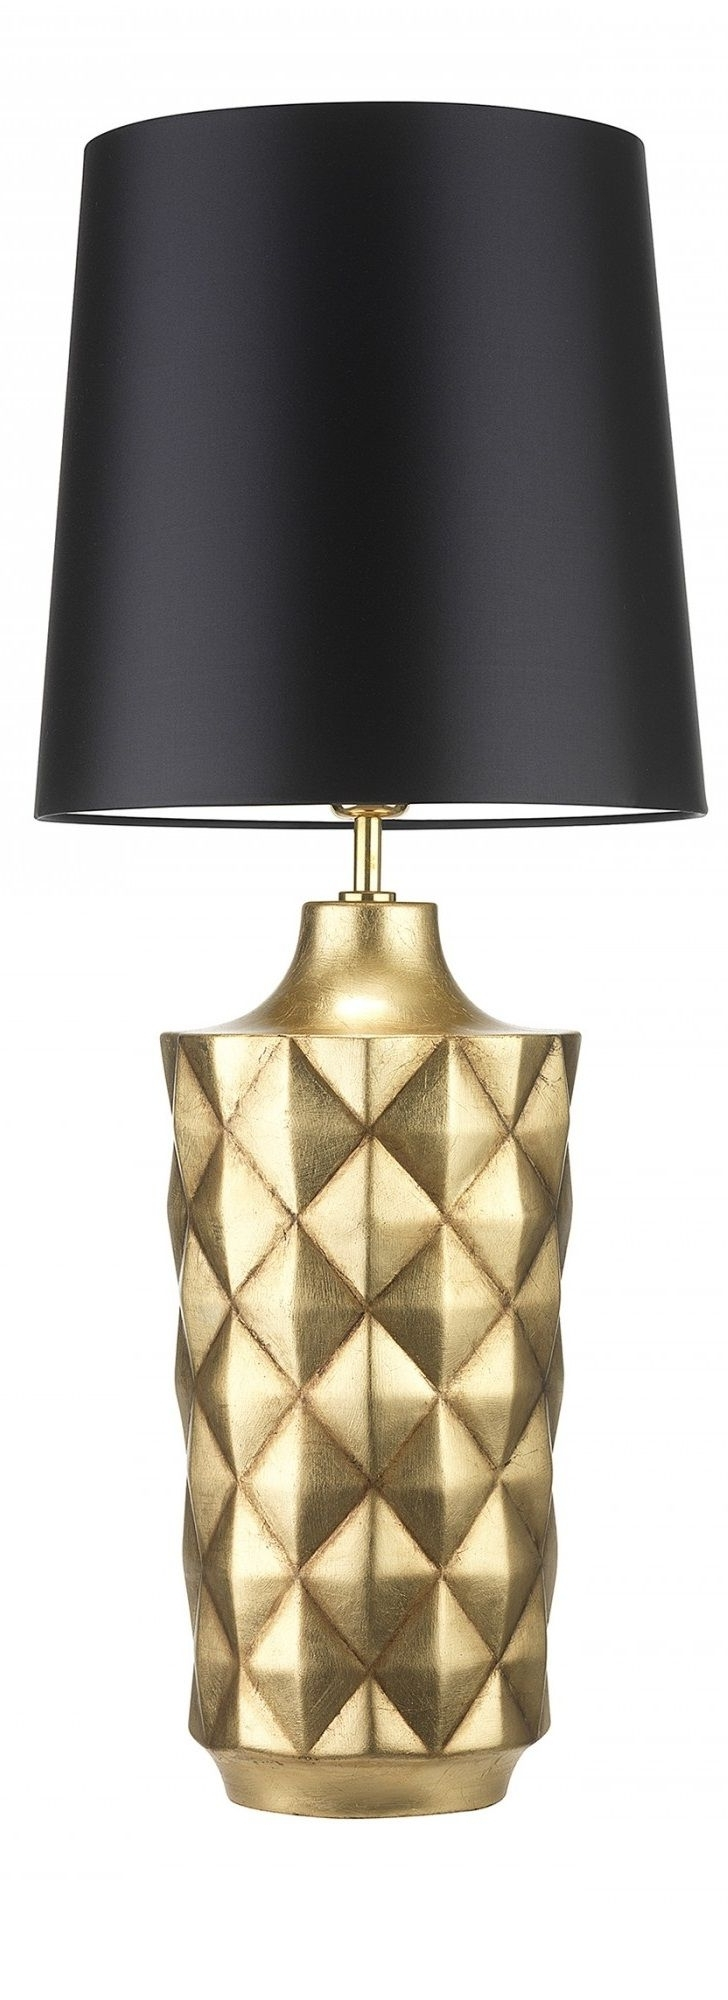 Newest Gold Living Room Table Lamps Intended For 373 Best Lighting – Table Lamps Images On Pinterest (View 11 of 15)